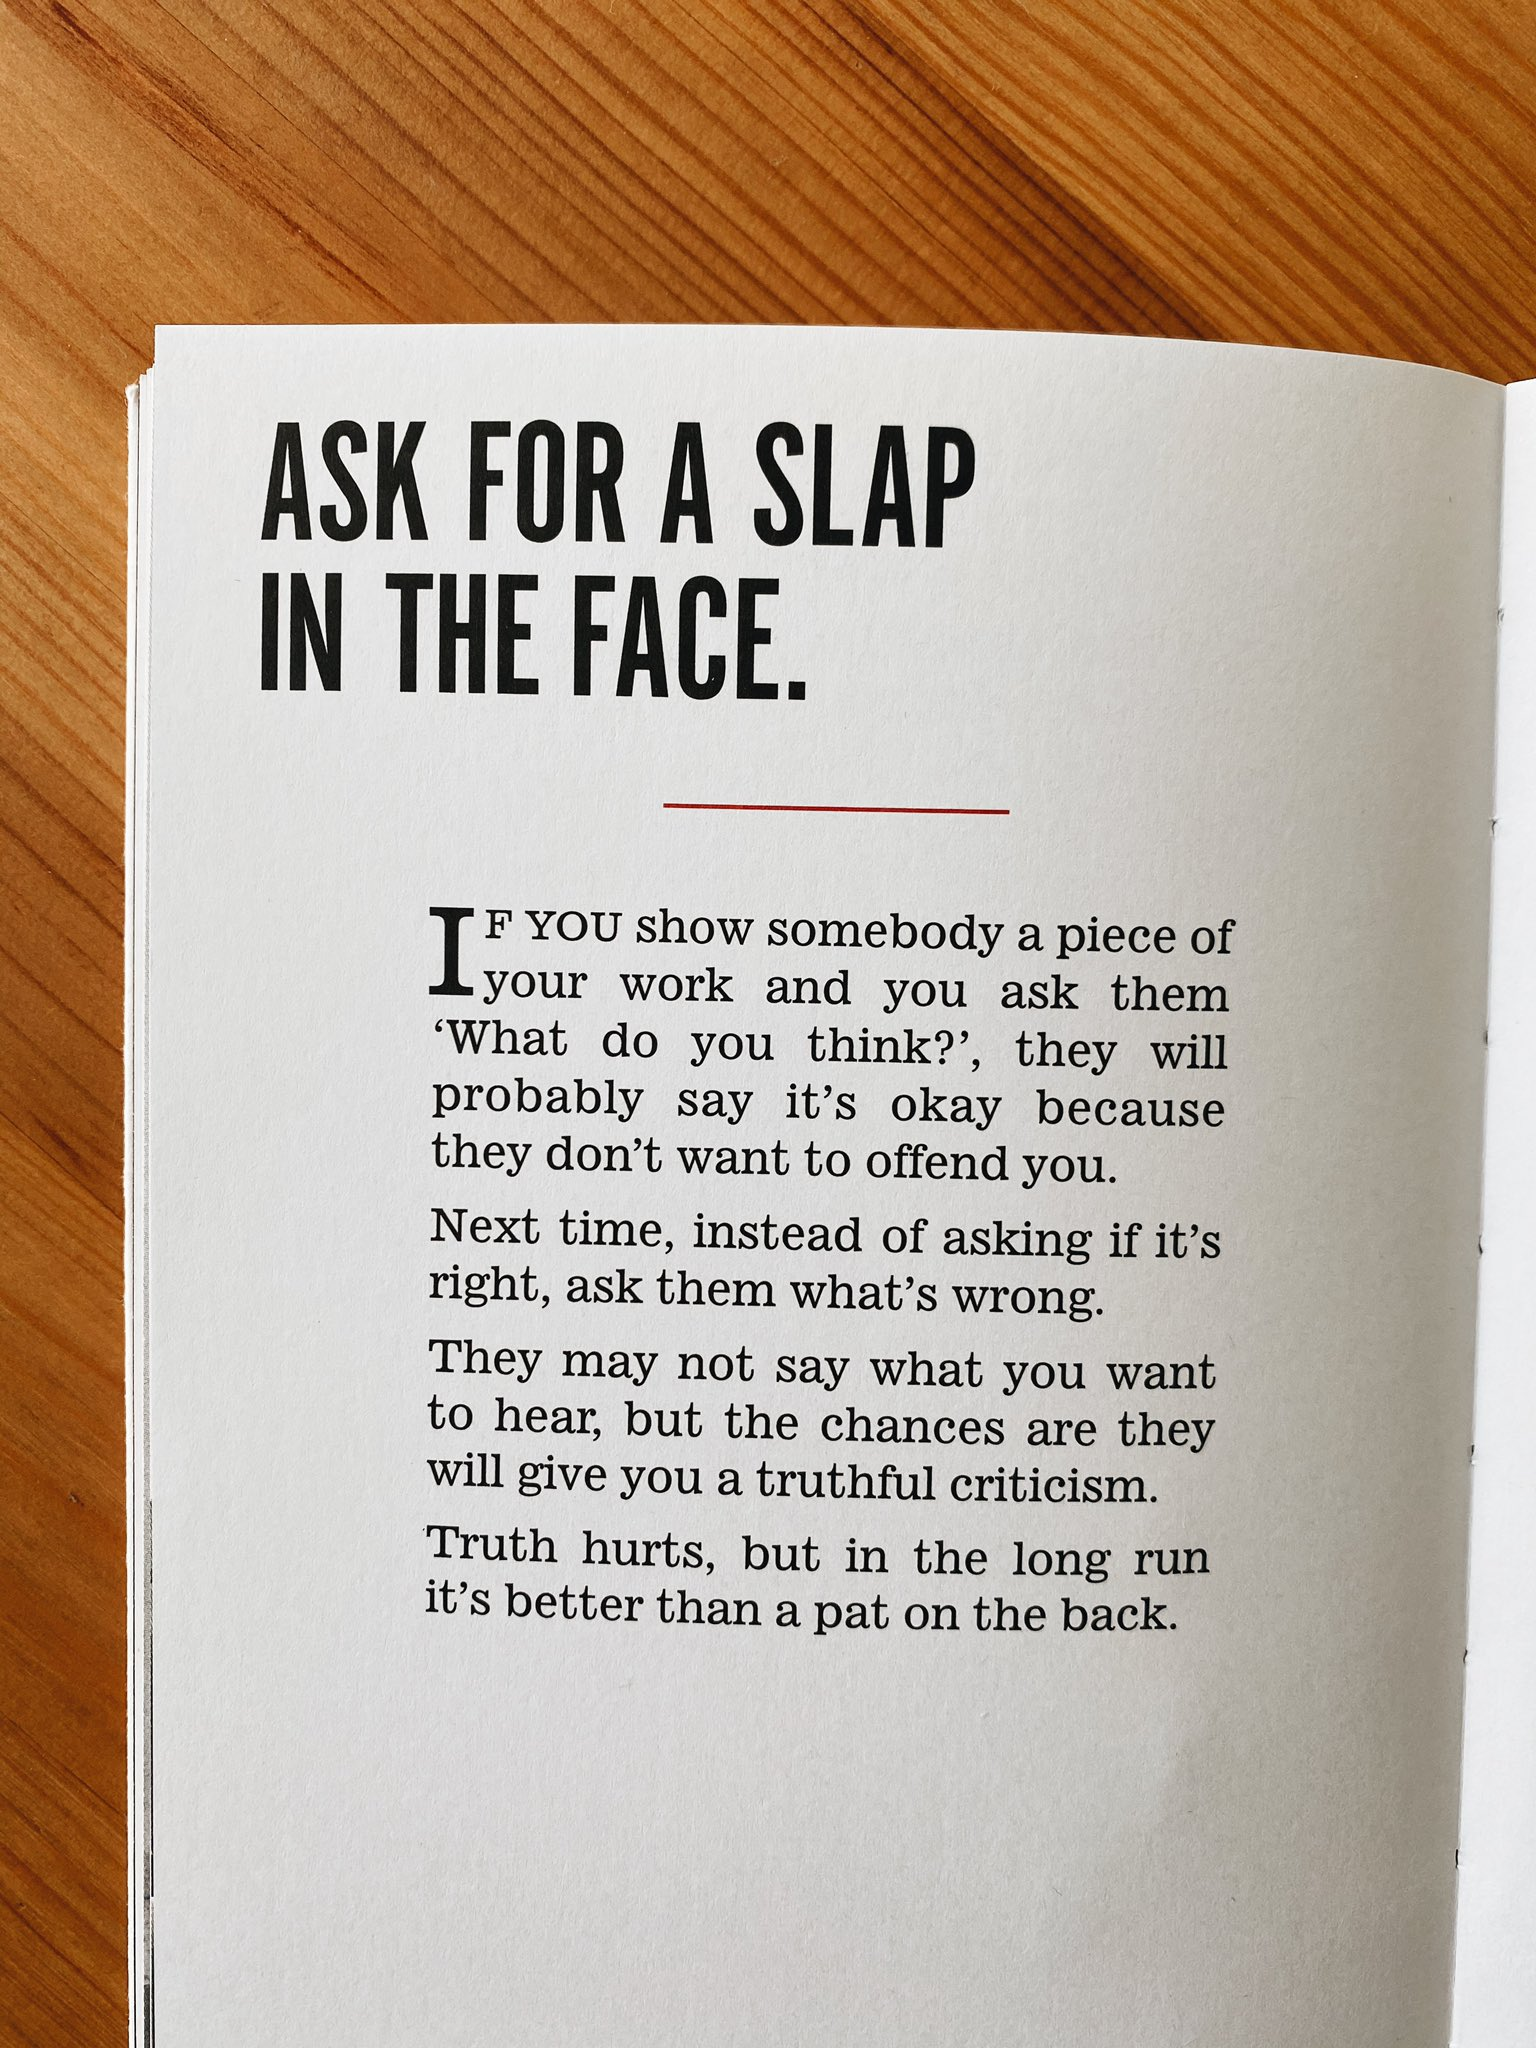 [image] ask for a slap in the face